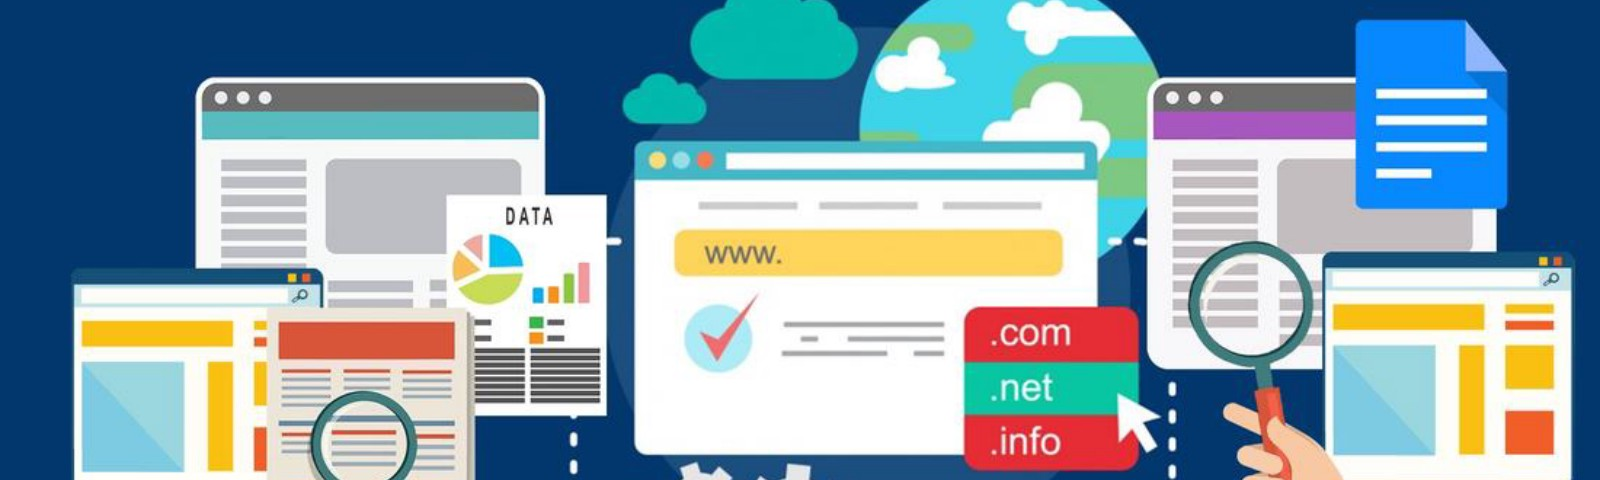 How To Scrape A Website Without Getting Blacklisted - By